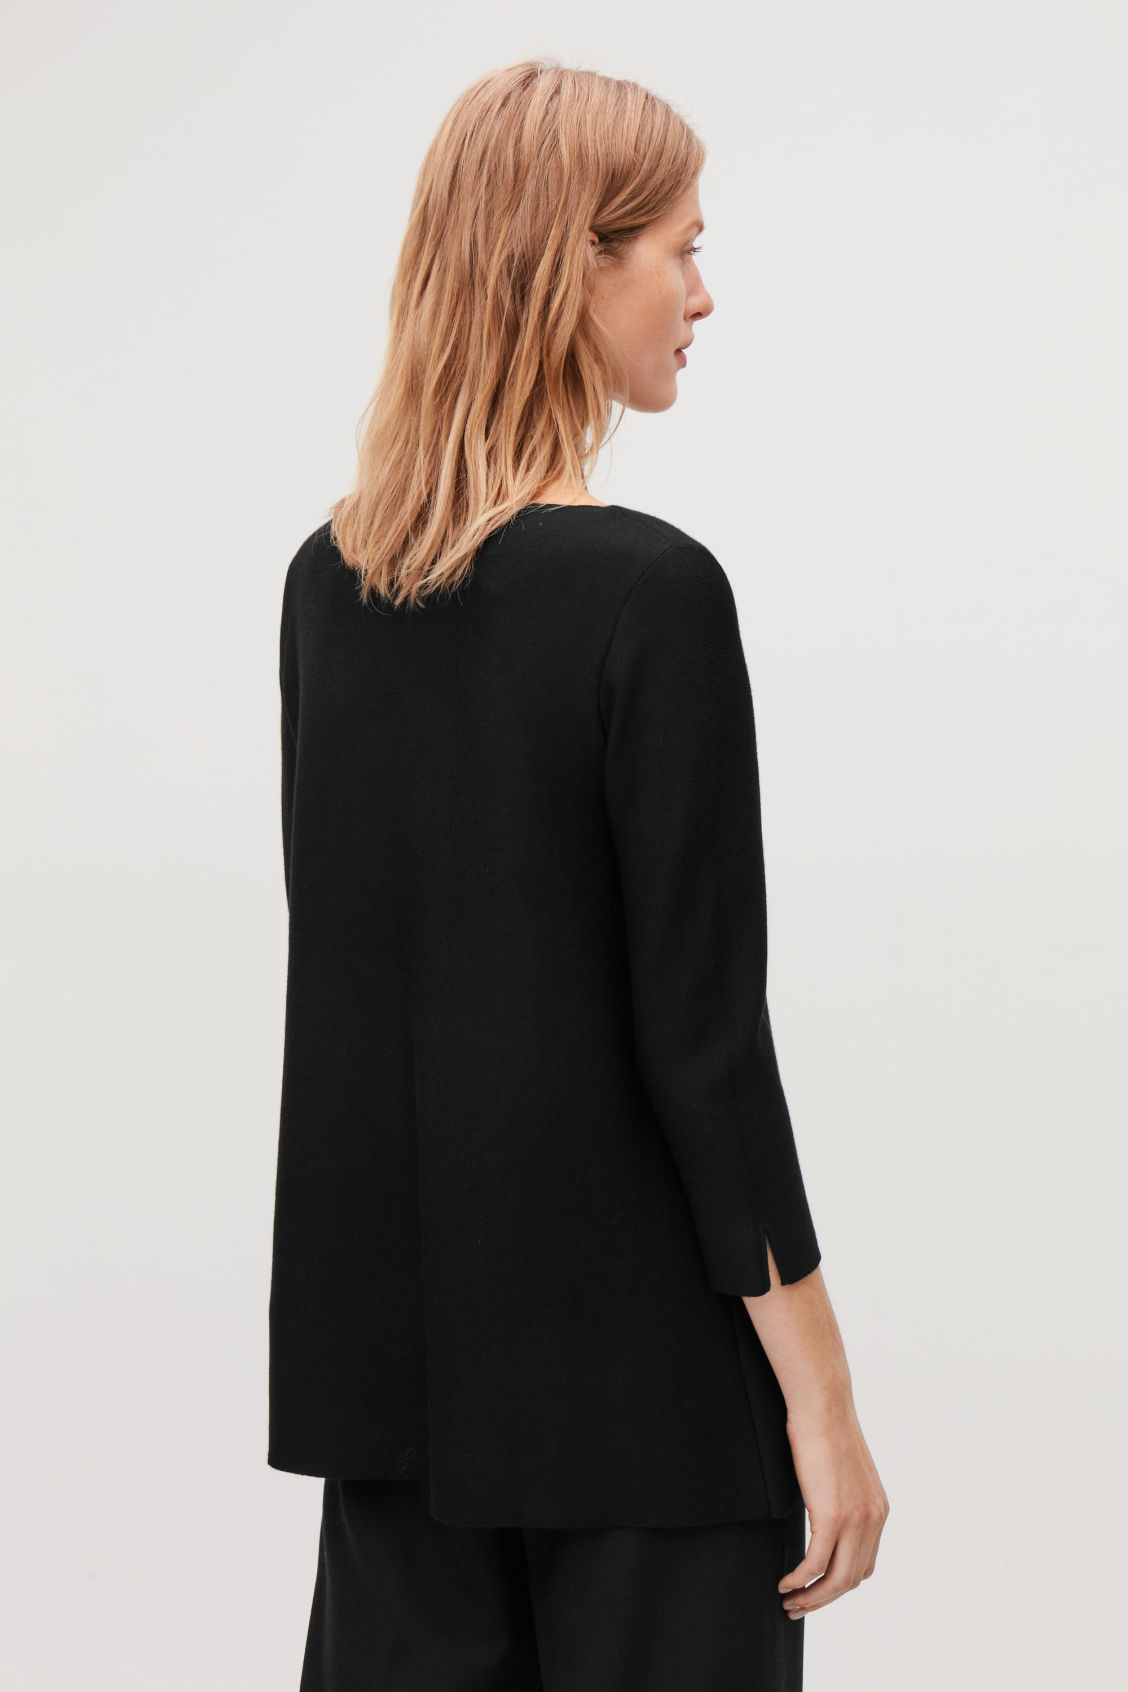 Detailed image of Cos a-line merino jumper in black